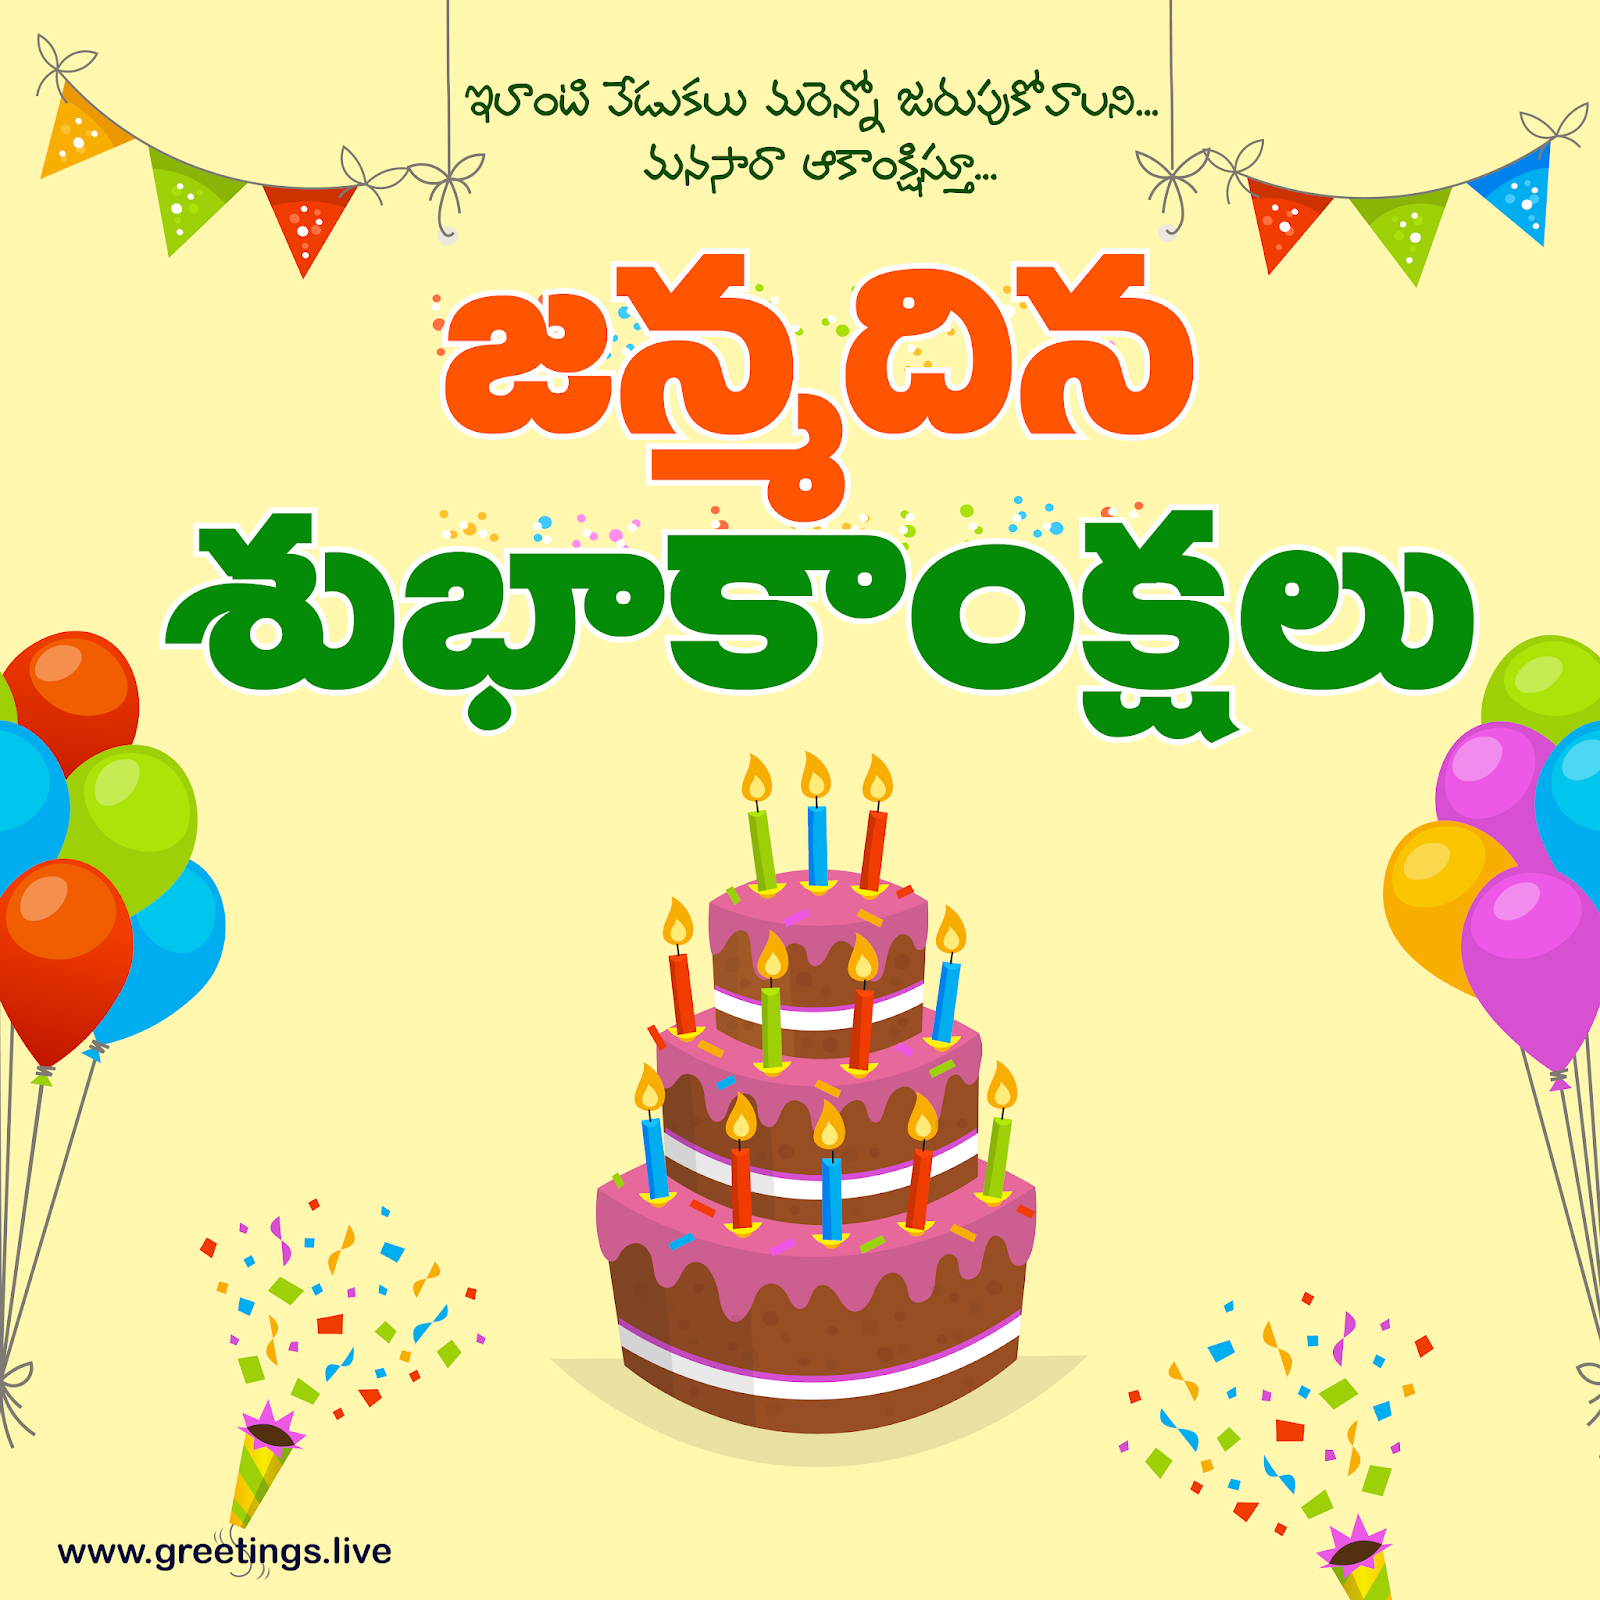 Greetings Live Free Daily Greetings Pictures Festival Gif Images Happy Birthday Wishes In Telugu Hd Images Greeting Cards Janmadina Subhakankshalu